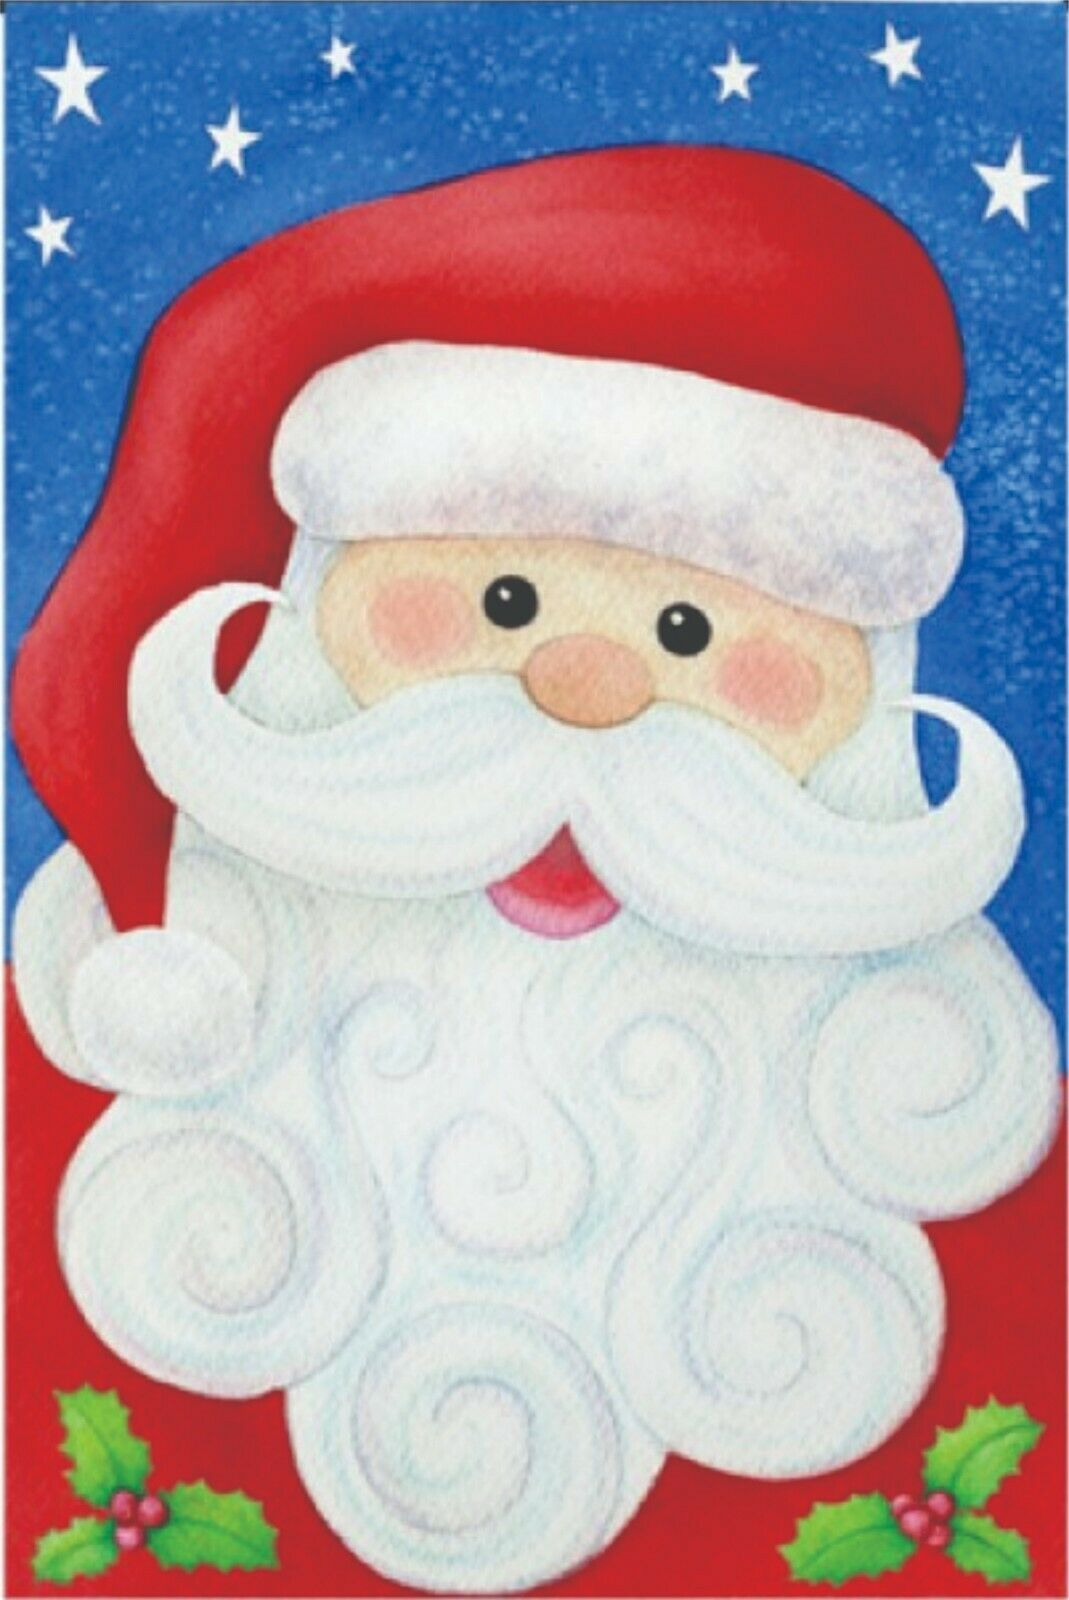 Jolly Santa Garden Flag - 12 x 18 inches - $7.84